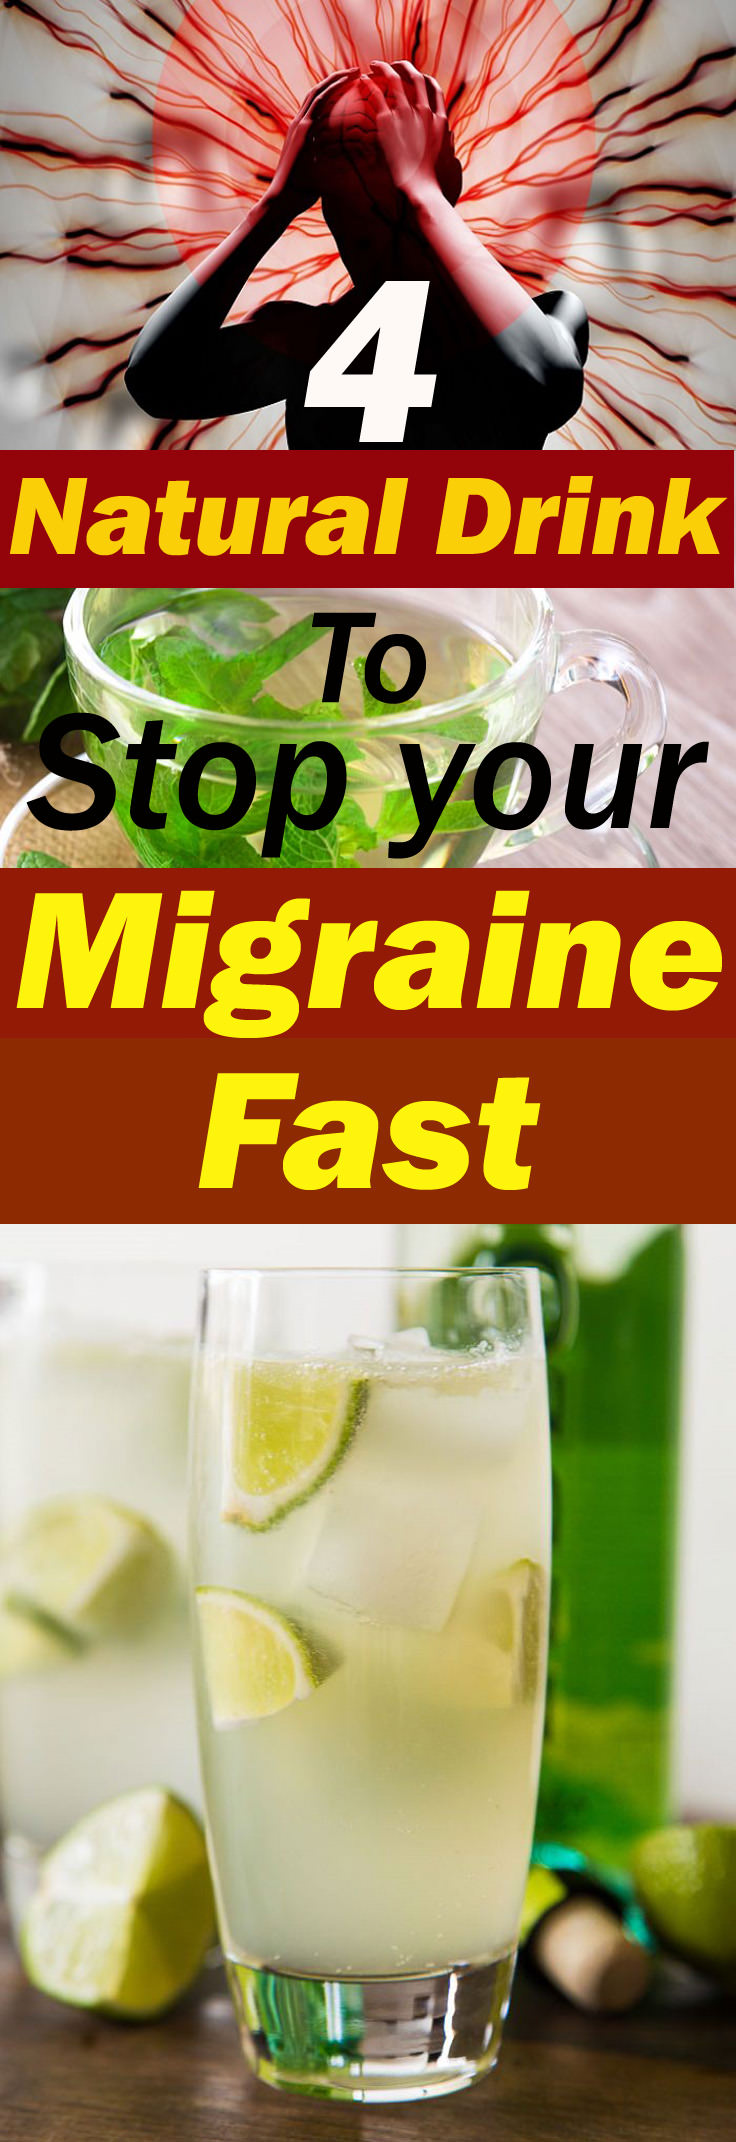 Suffering from a migraine or a headache? Give this a try-- 4 Natural drinks to stop your migraine fast. Check out!